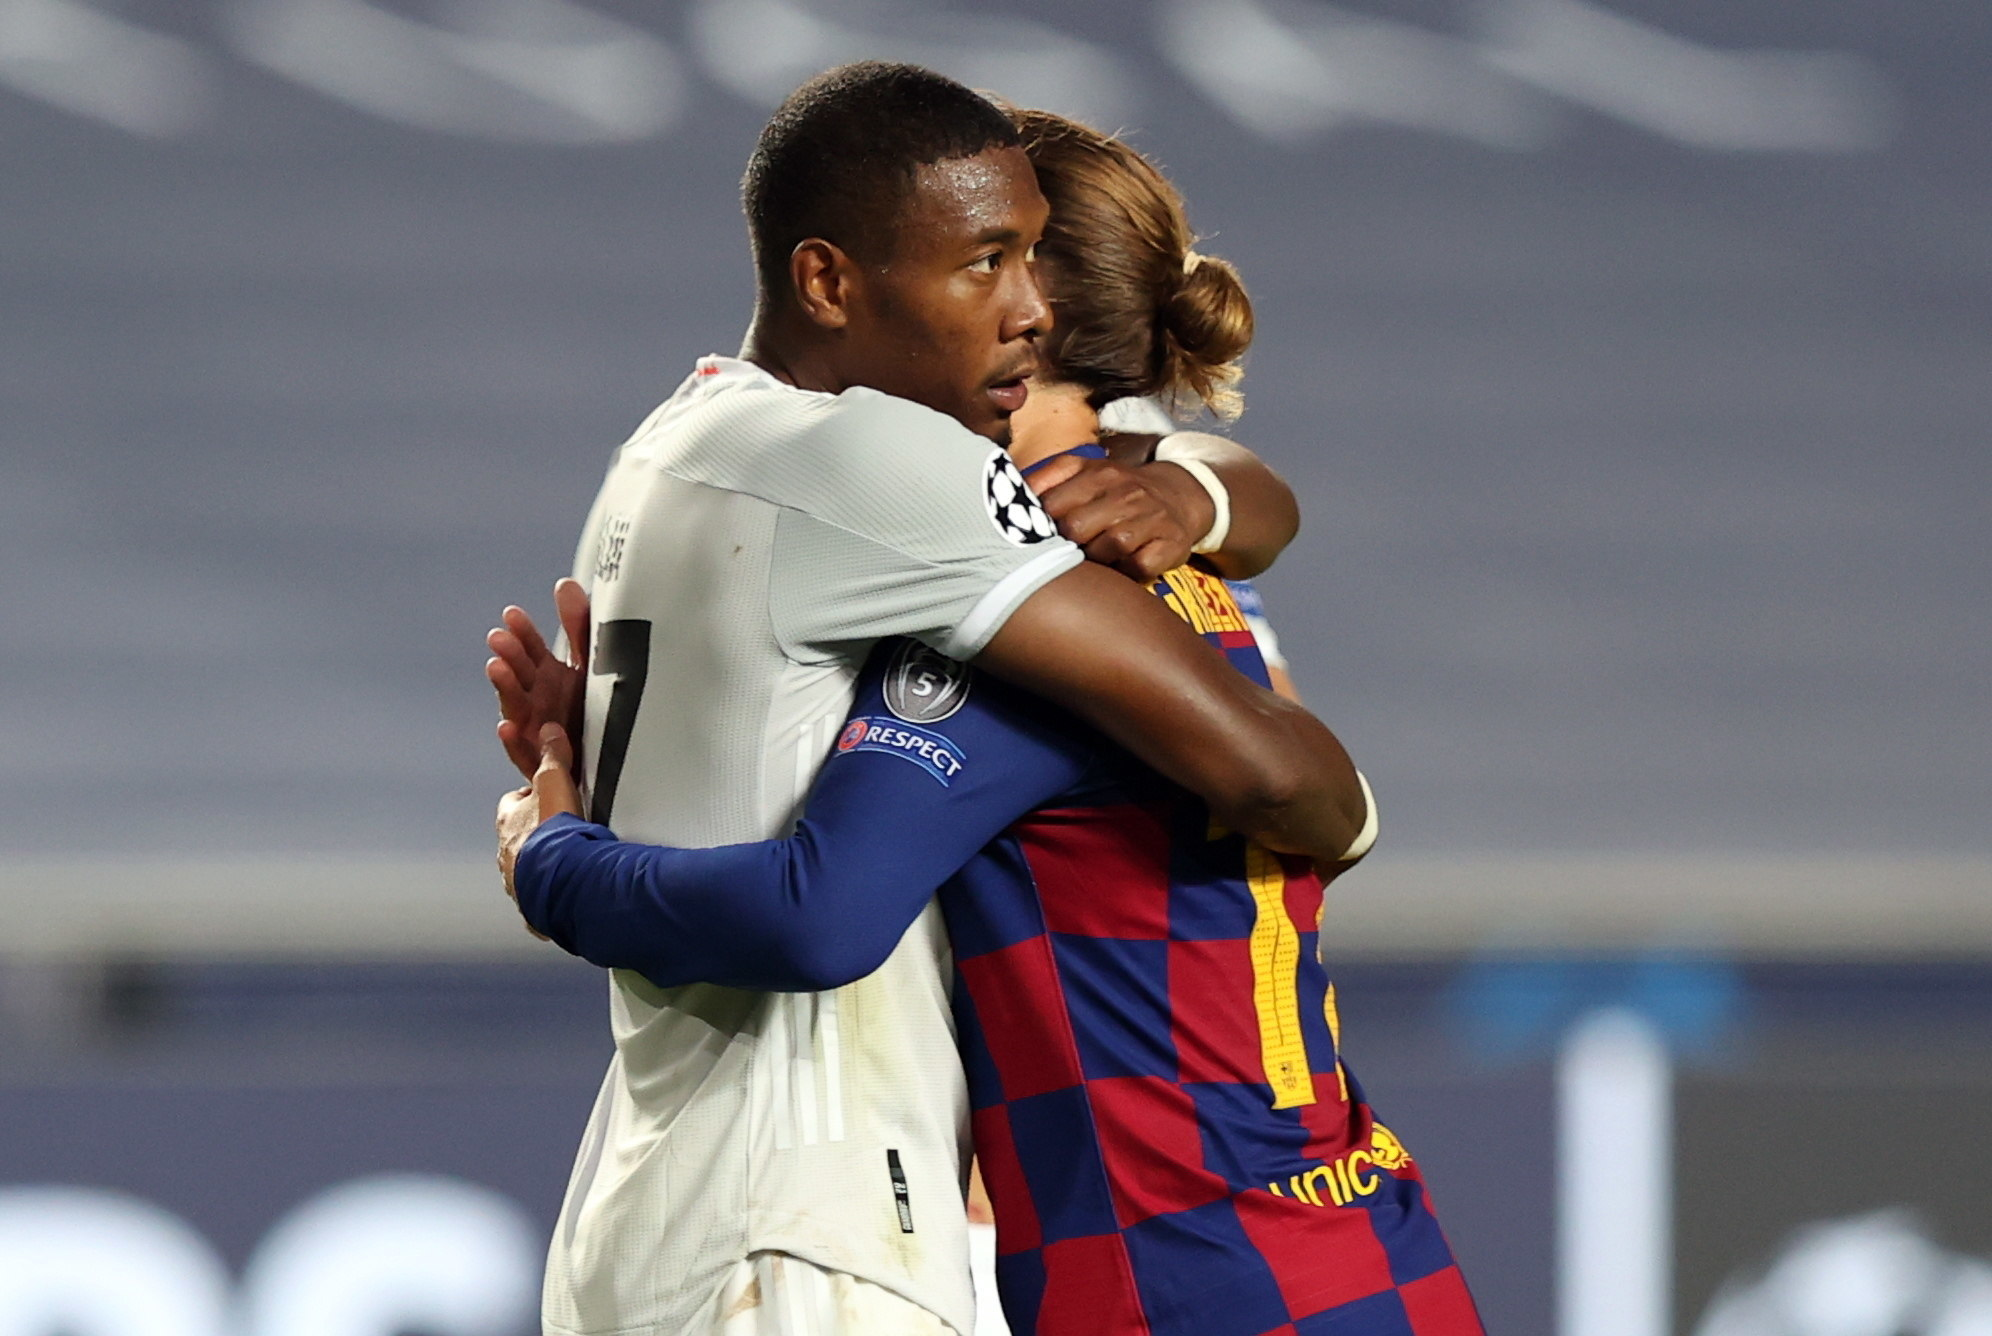 Lisbon (Portugal), 14/08/2020.- Antoine Griezmann of Barcelona (R) and David Alaba of lt;HIT gt;Bayern lt;/HIT gt; Munich hug each other at the end of the UEFA Champions League quarter final match between Barcelona and lt;HIT gt;Bayern lt;/HIT gt; Munich in Lisbon, Portugal, 14 August 2020. (Liga de Campeones, Lisboa) EFE/EPA/Rafael Marchante / POOL